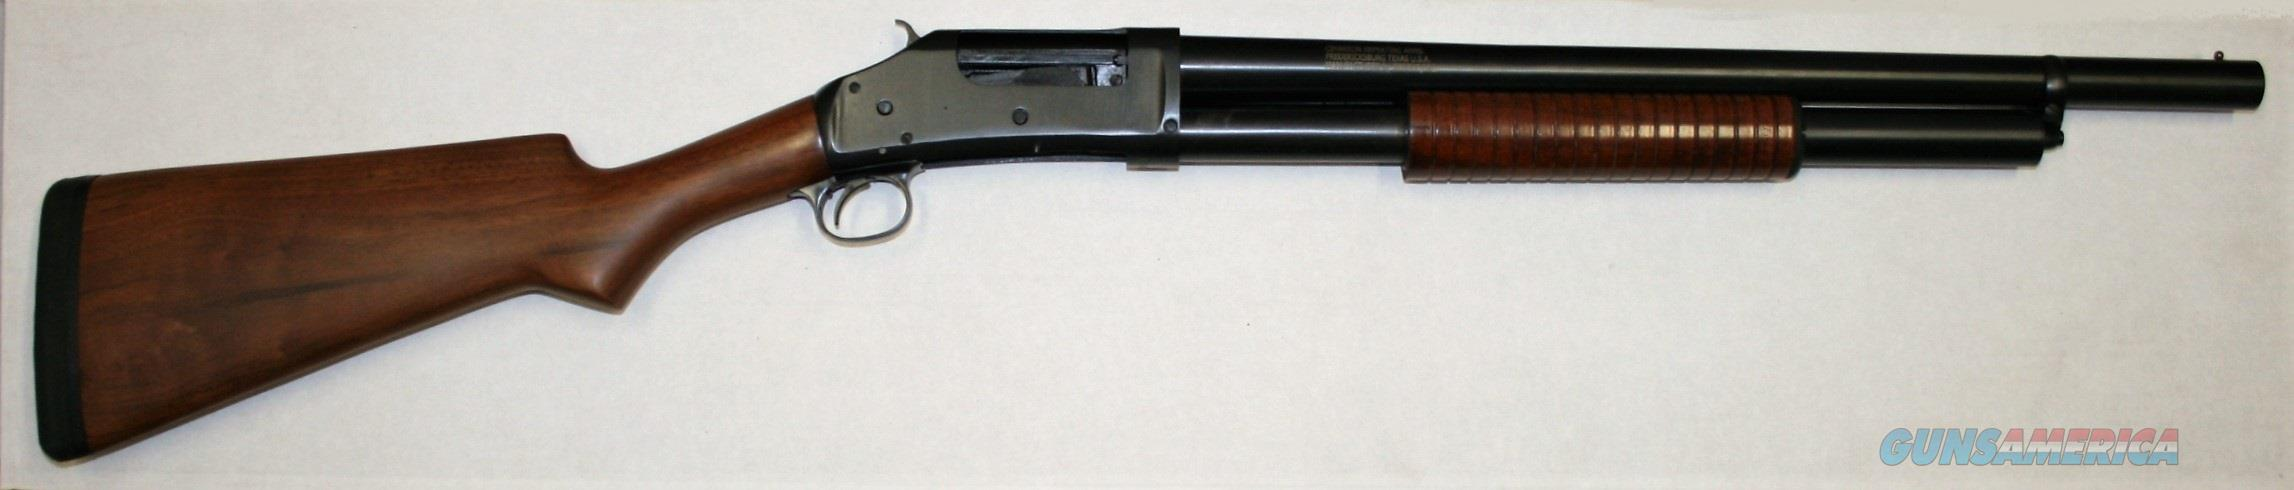 "Cimarron 1897 Pump 12 GA 20"" Barrel 2 3/4"" 5 Rds  Guns > Shotguns > Cimmaron Shotguns"